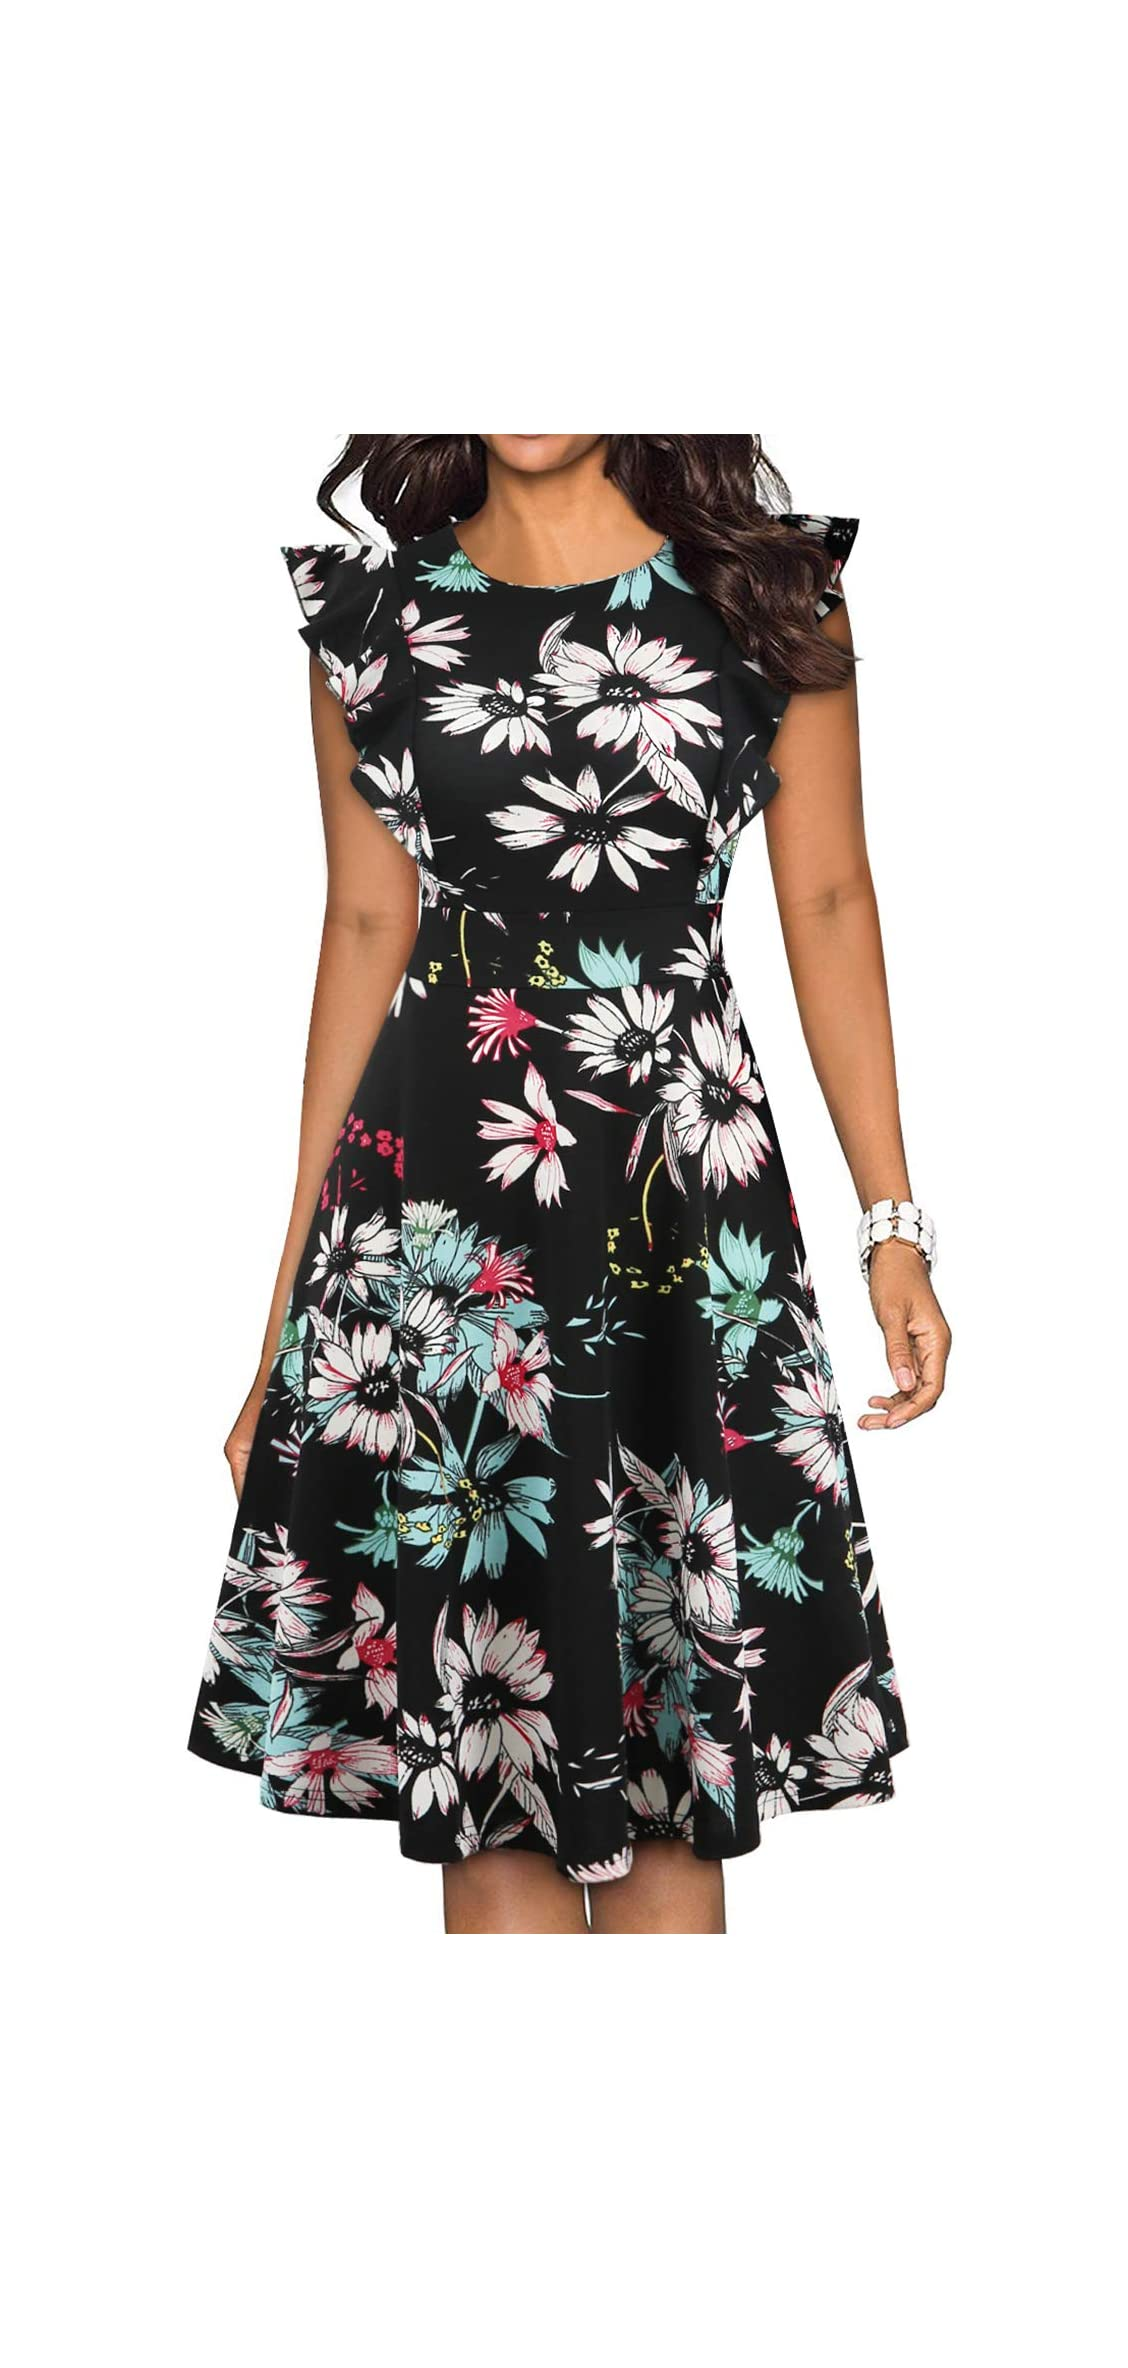 Women's Vintage Ruffle Floral Flared A Line Swing Casual